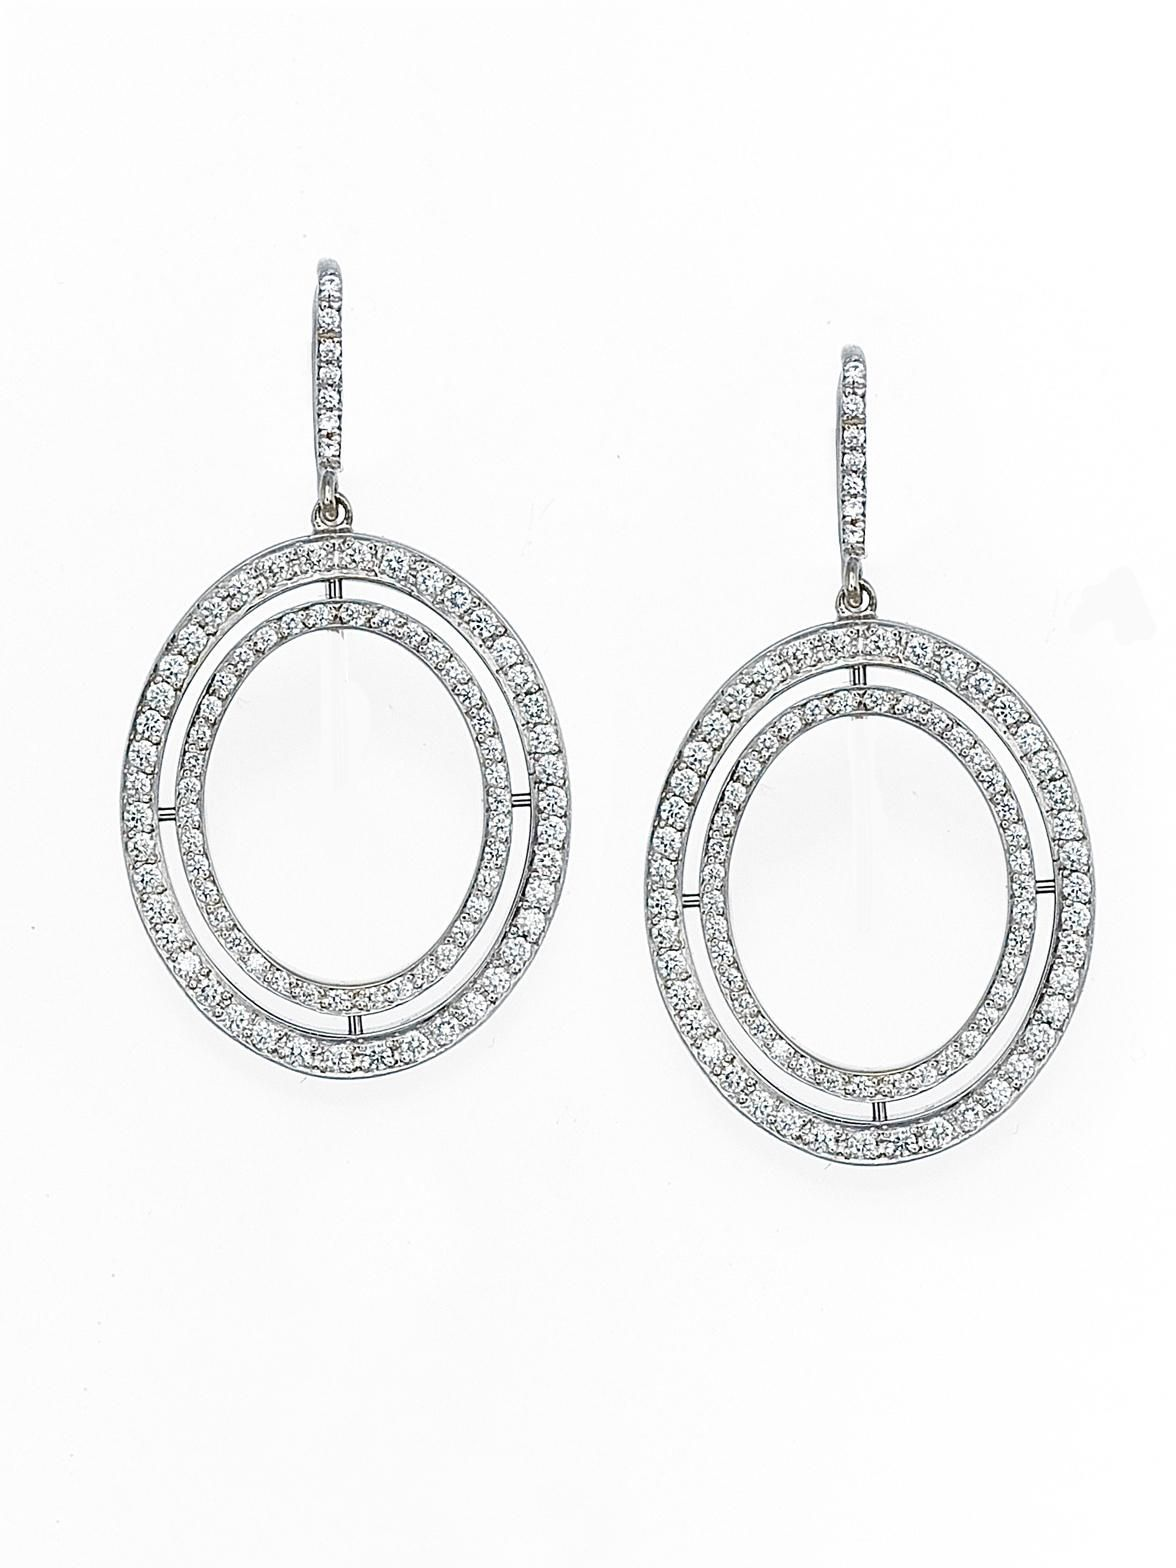 Ivanka Trump 18k White Gold Small Signature Open Oval Pave Diamond Drop Earrings. Available at London Jewelers.